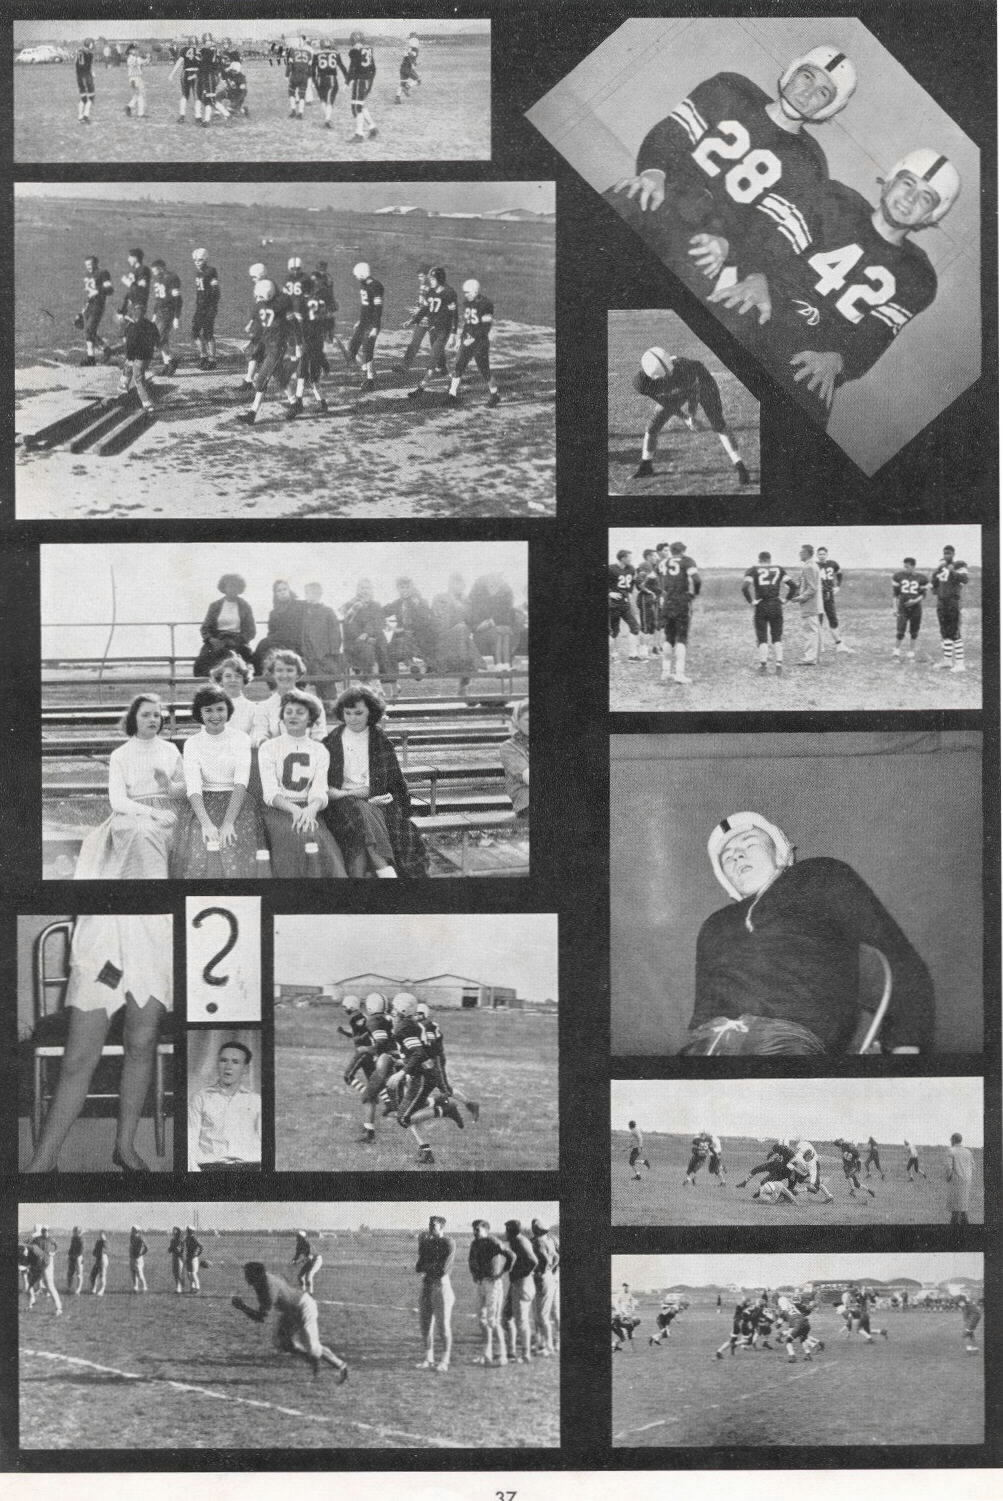 Chateauroux American High School - 1956 Yearbook Taylor Crowley